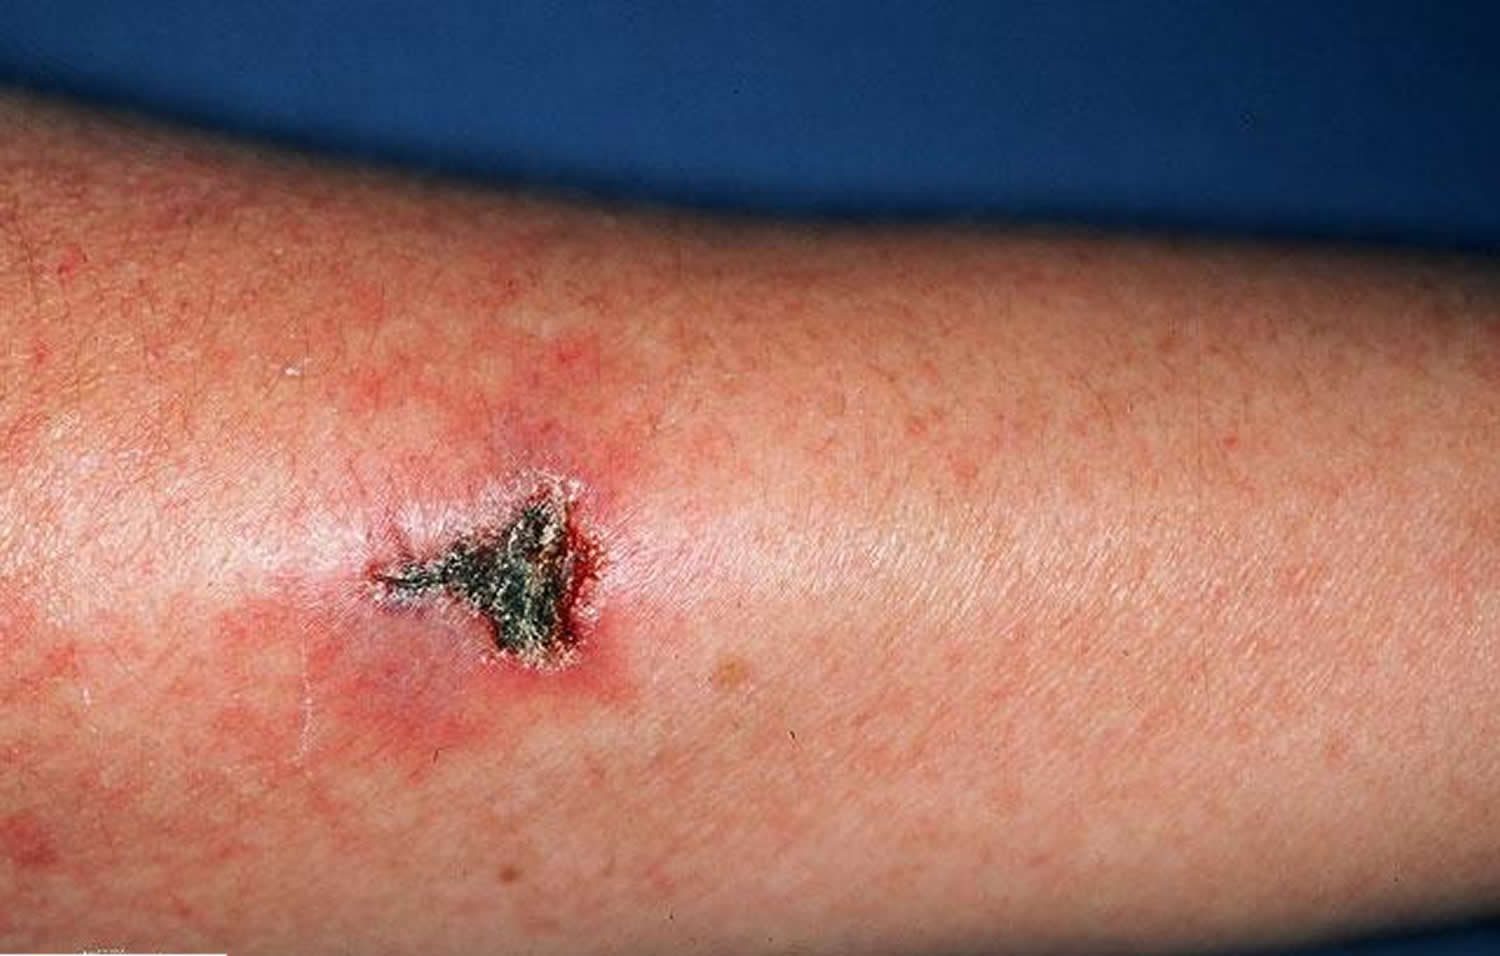 Churg-Strauss syndrome skin vasculitis